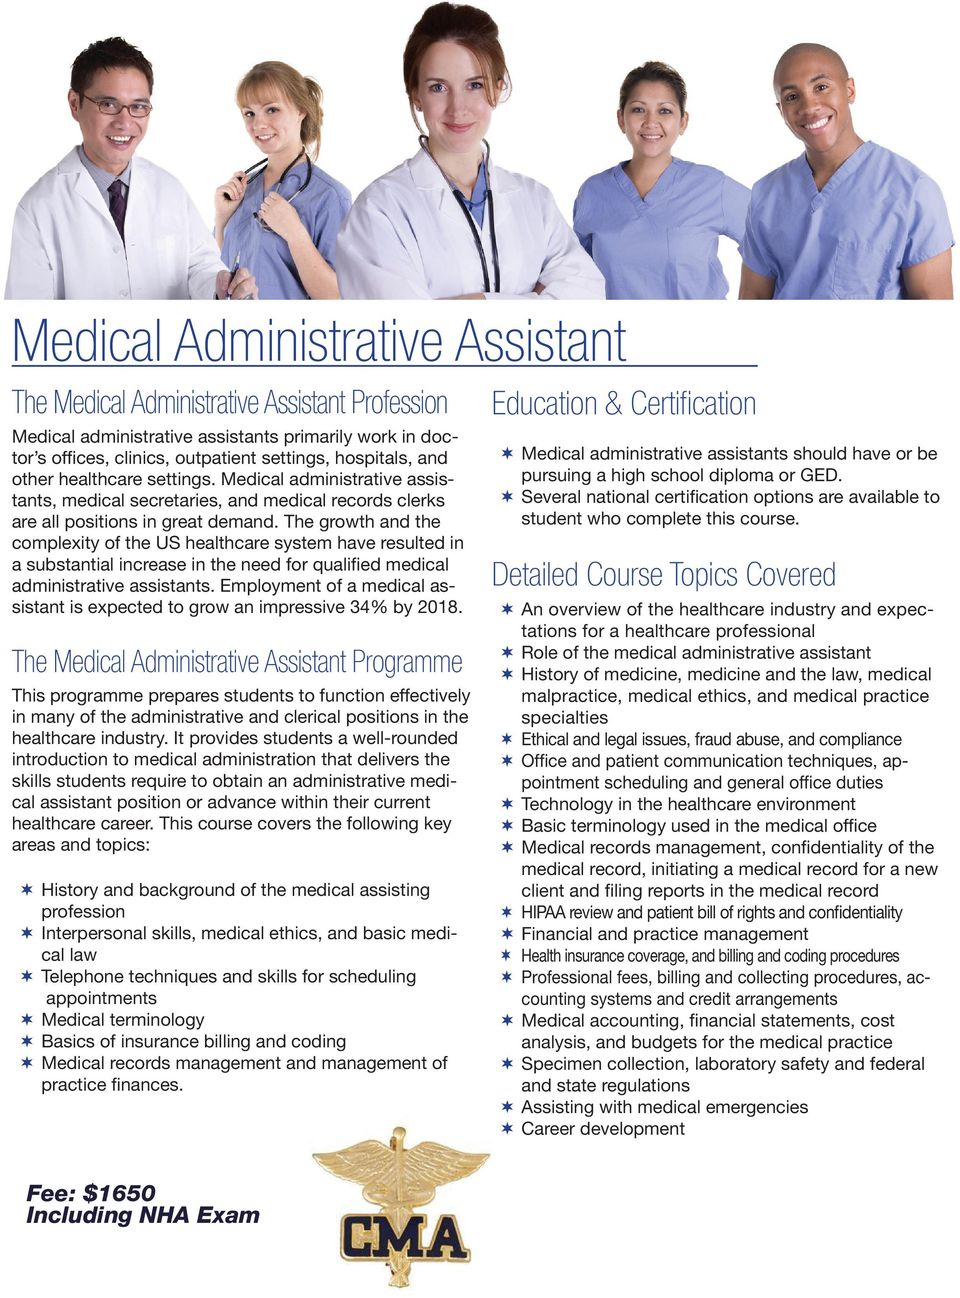 The growth and the complexity of the US healthcare system have resulted in a substantial increase in the need for qualified medical administrative assistants.